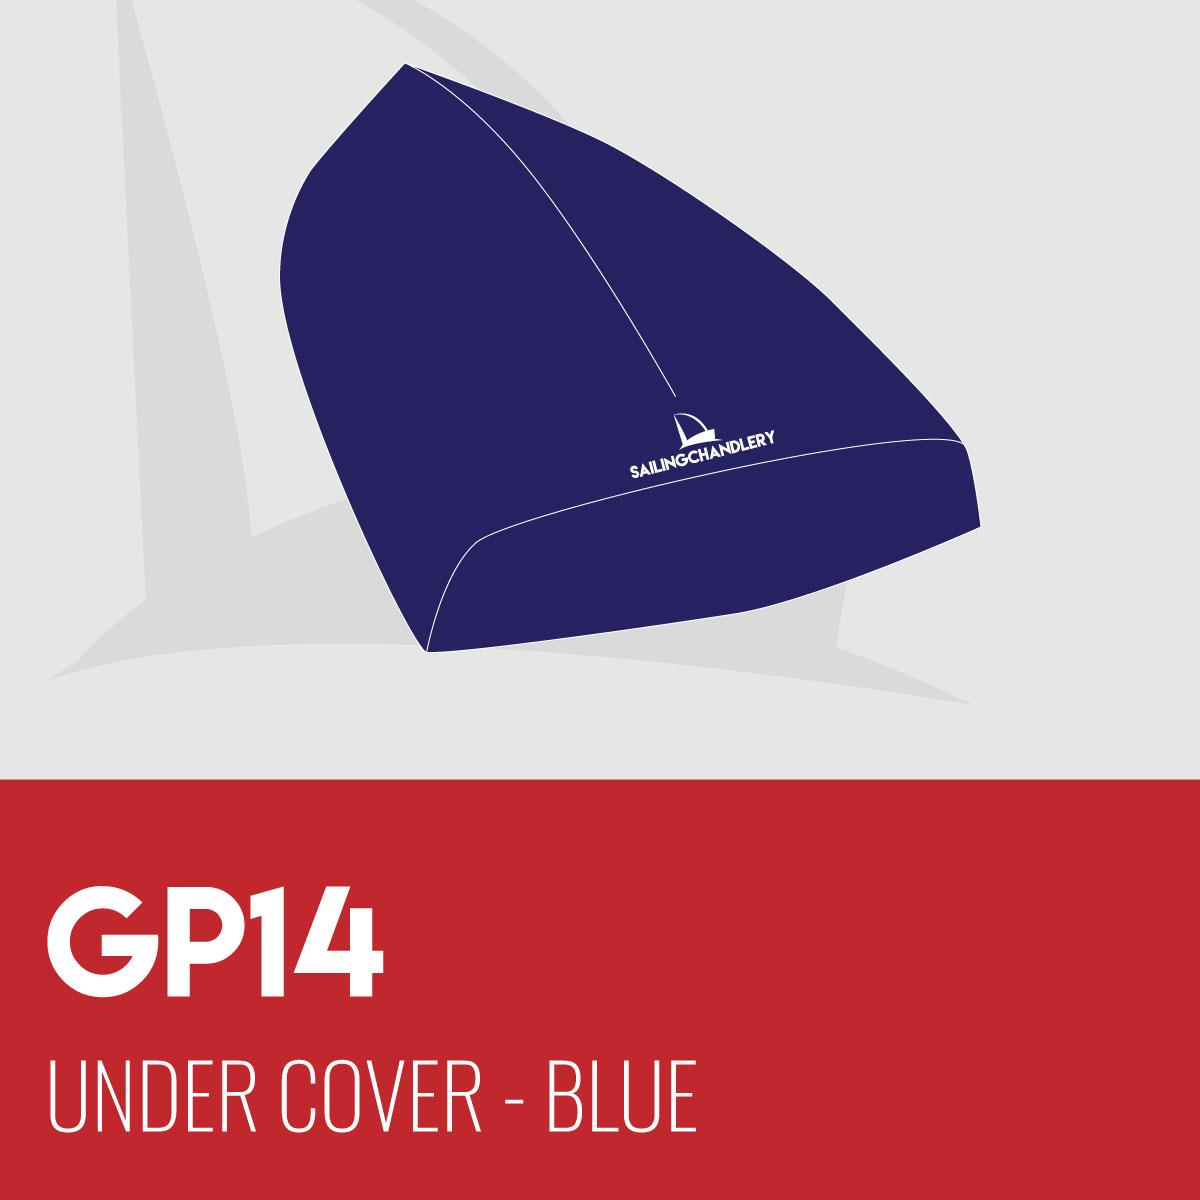 GP14 Under Cover